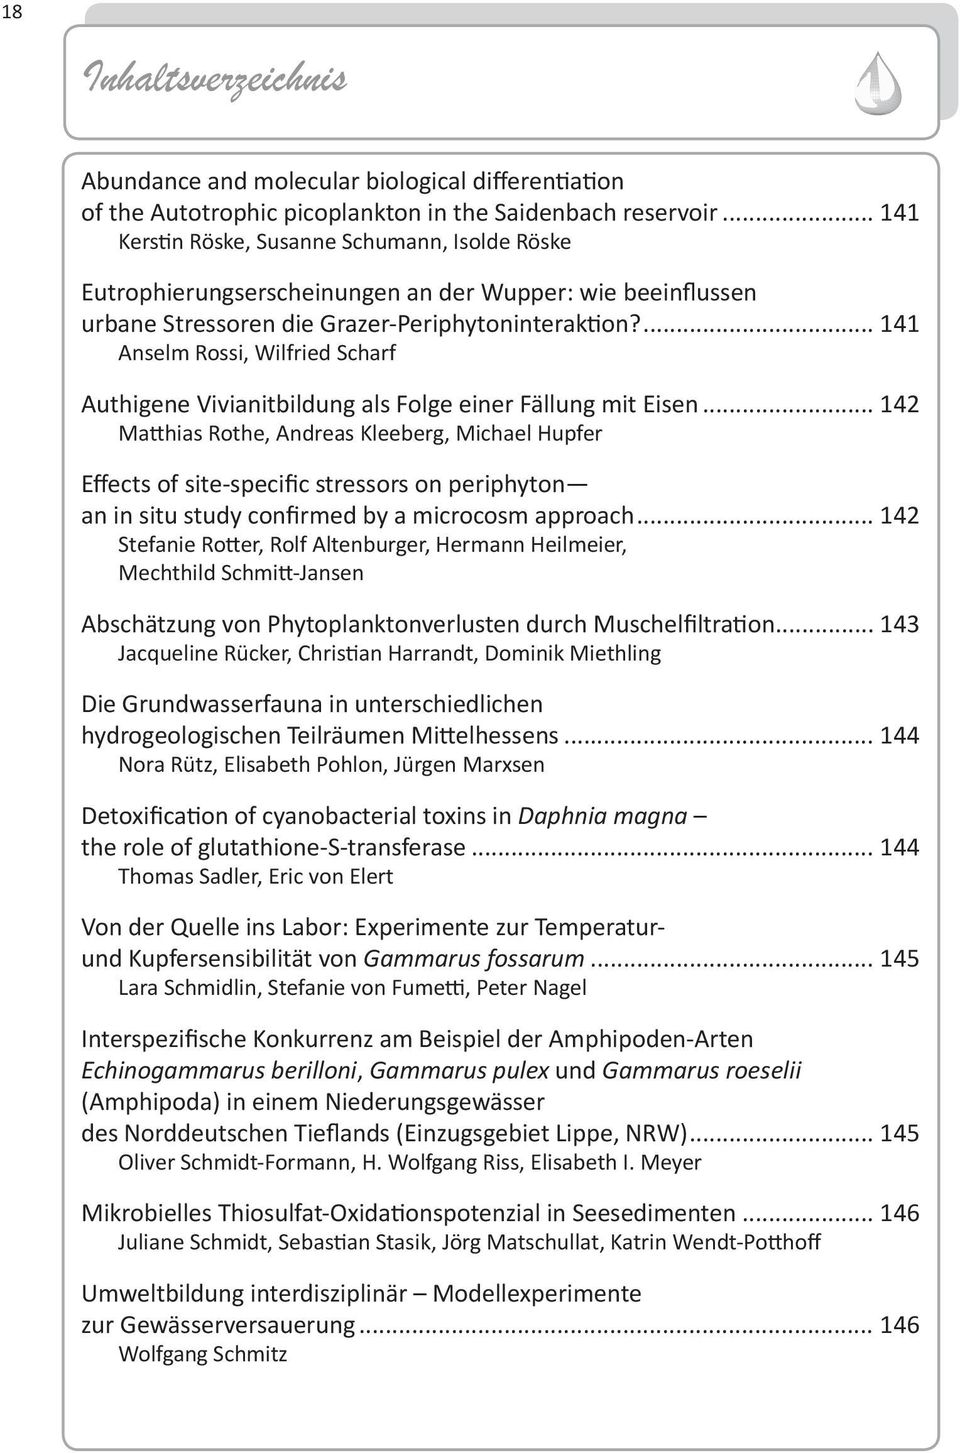 4 Anselm Rossi, Wilfried Scharf Authigene Vivianitbildung als Folge einer Fällung mit Eisen 4 Matthias Rothe, Andreas Kleeberg, Michael Hupfer Effects of site-specific stressors on periphyton an in